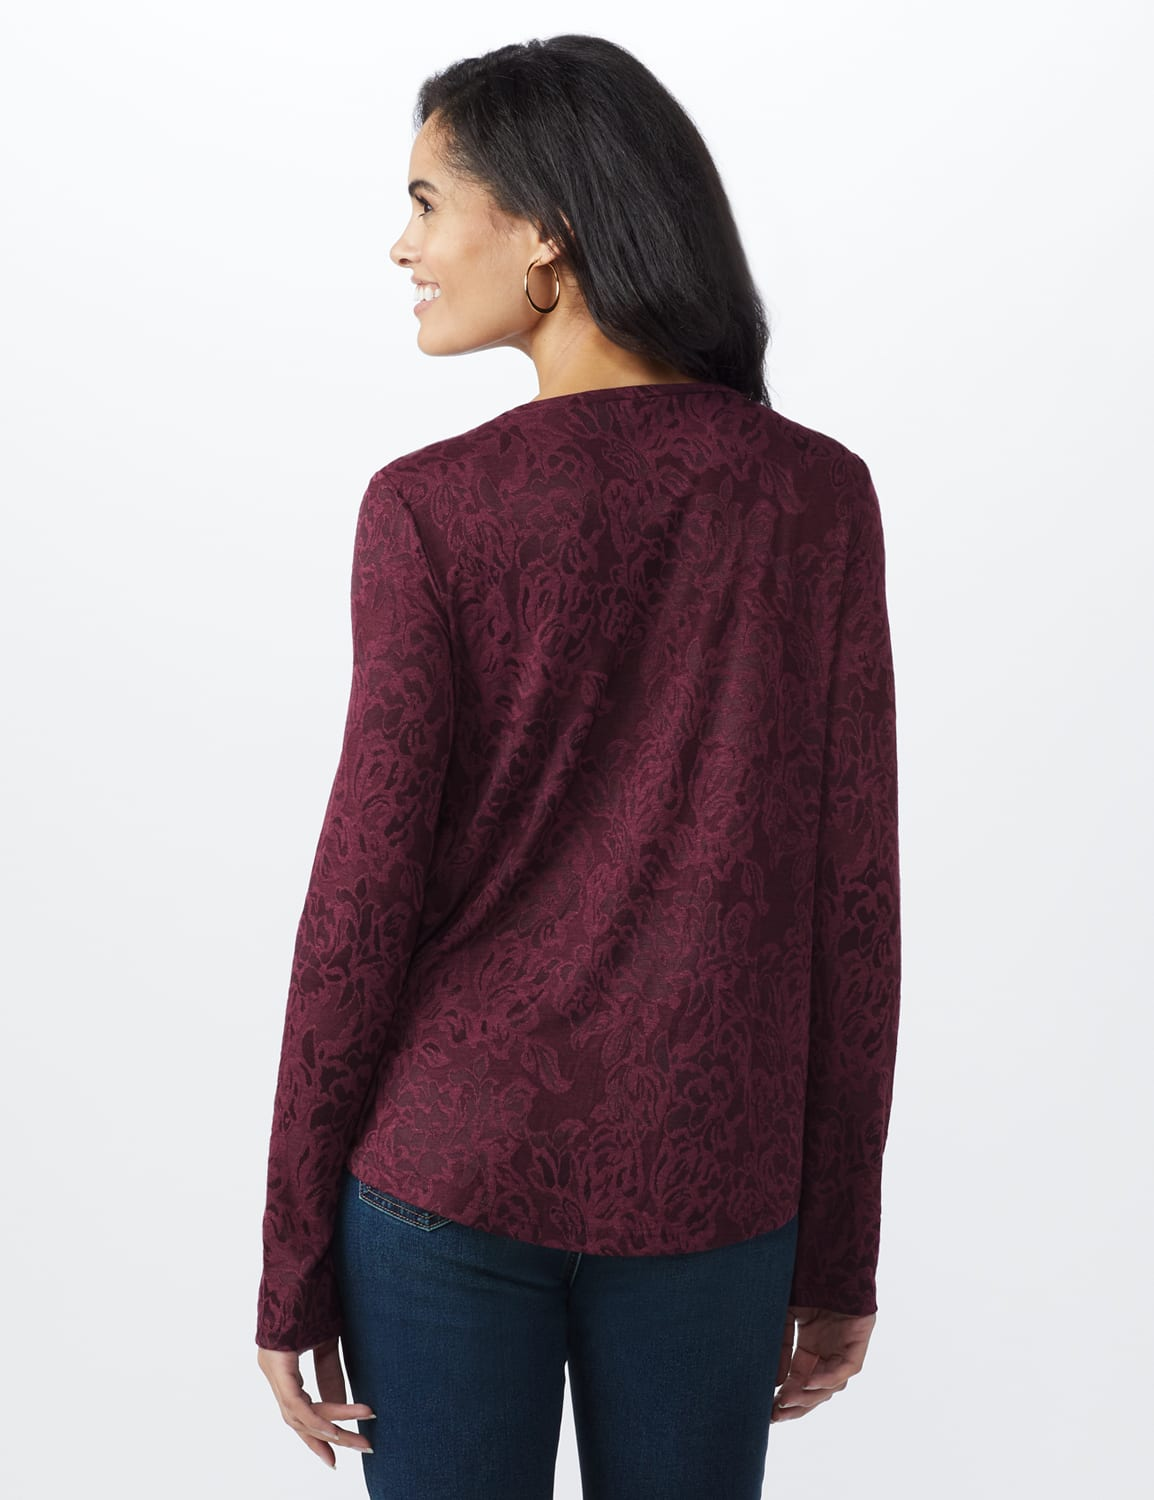 Jacquard Knit Top - Merlot - Back